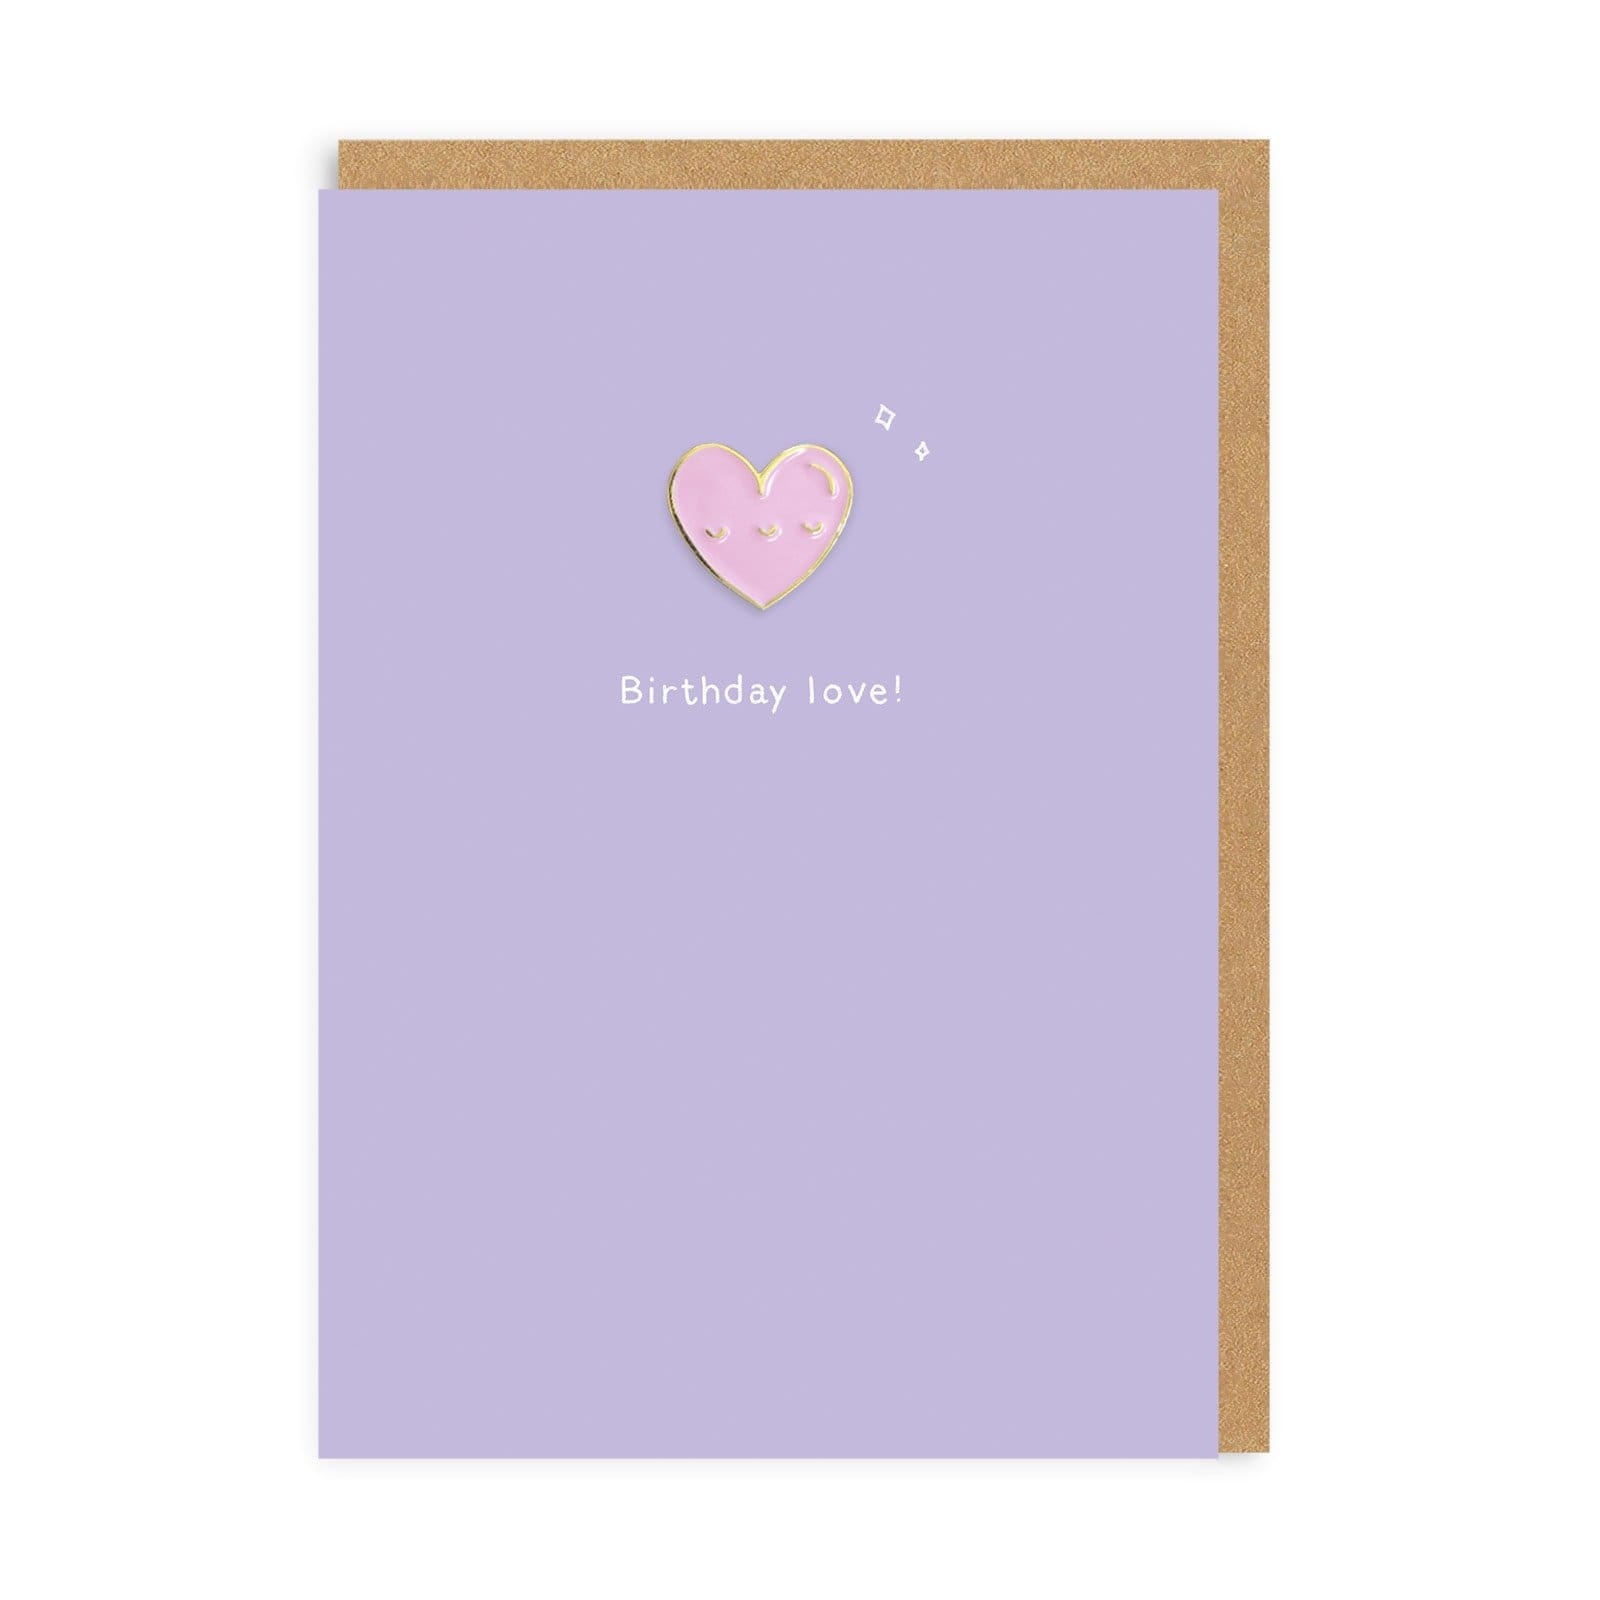 Birthday Love Enamel Pin Greeting Card